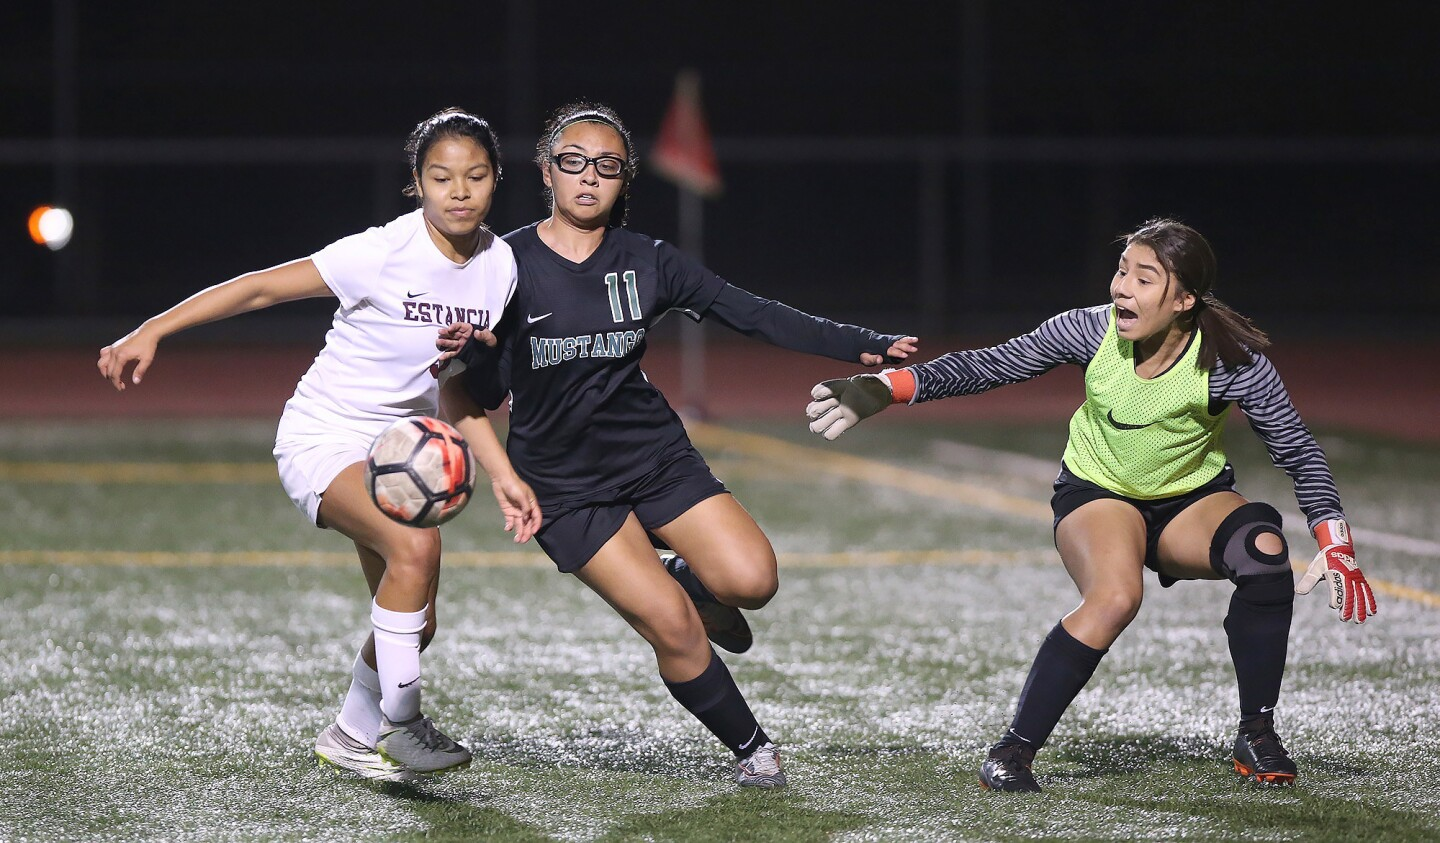 Photo Gallery: Estancia vs. Costa Mesa in girls' soccer